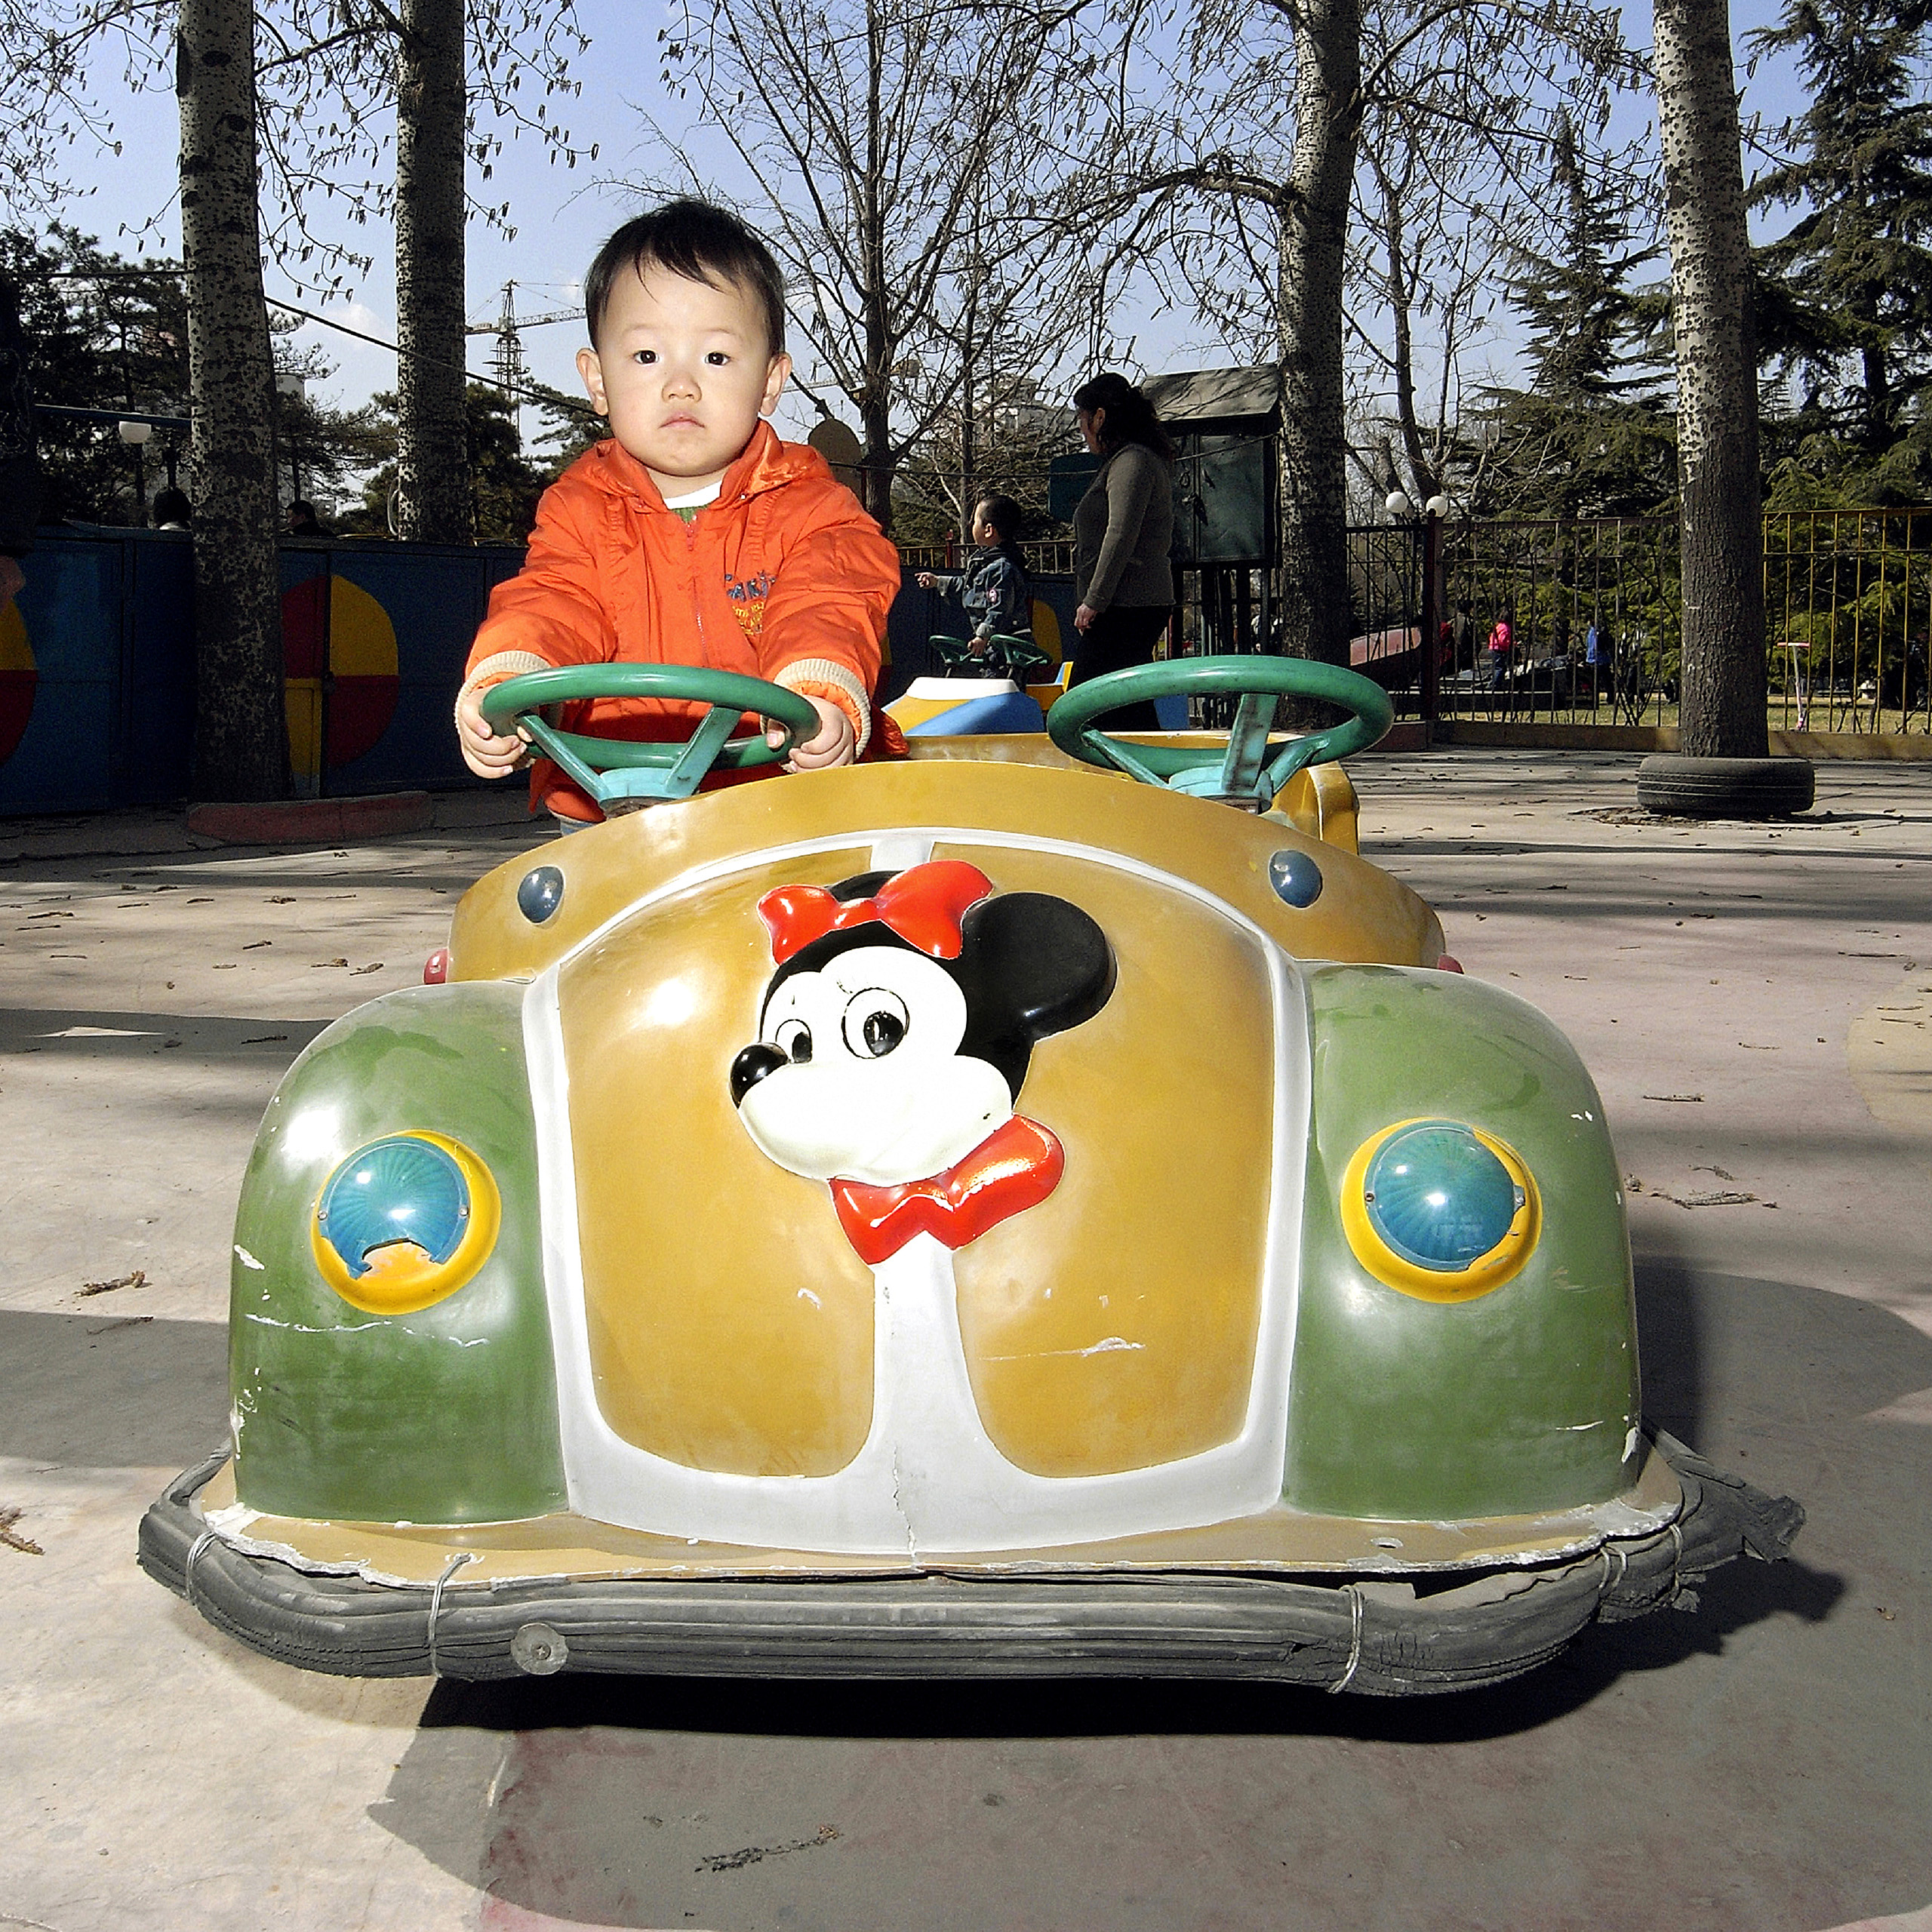 The Chinese government estimates that the one-child policy led to 400million fewerbirths. China now faces a major aging crisis.